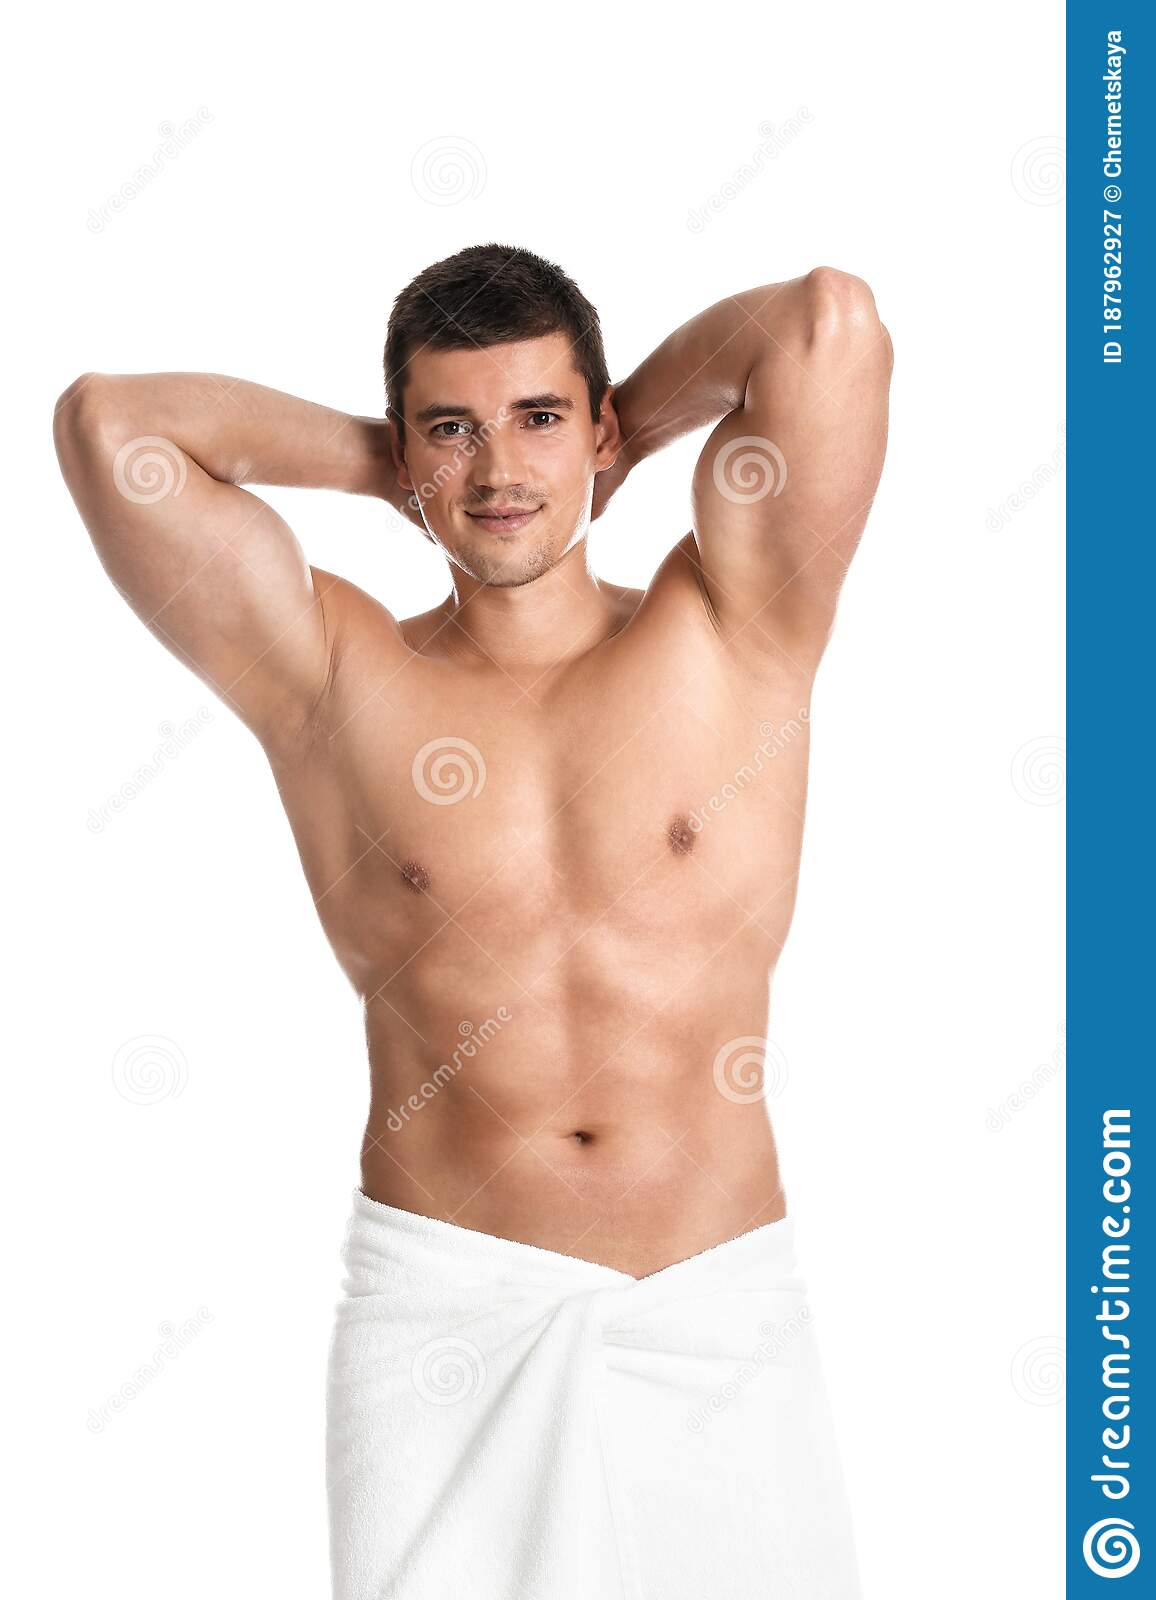 Body photo male hot Category:Nude standing